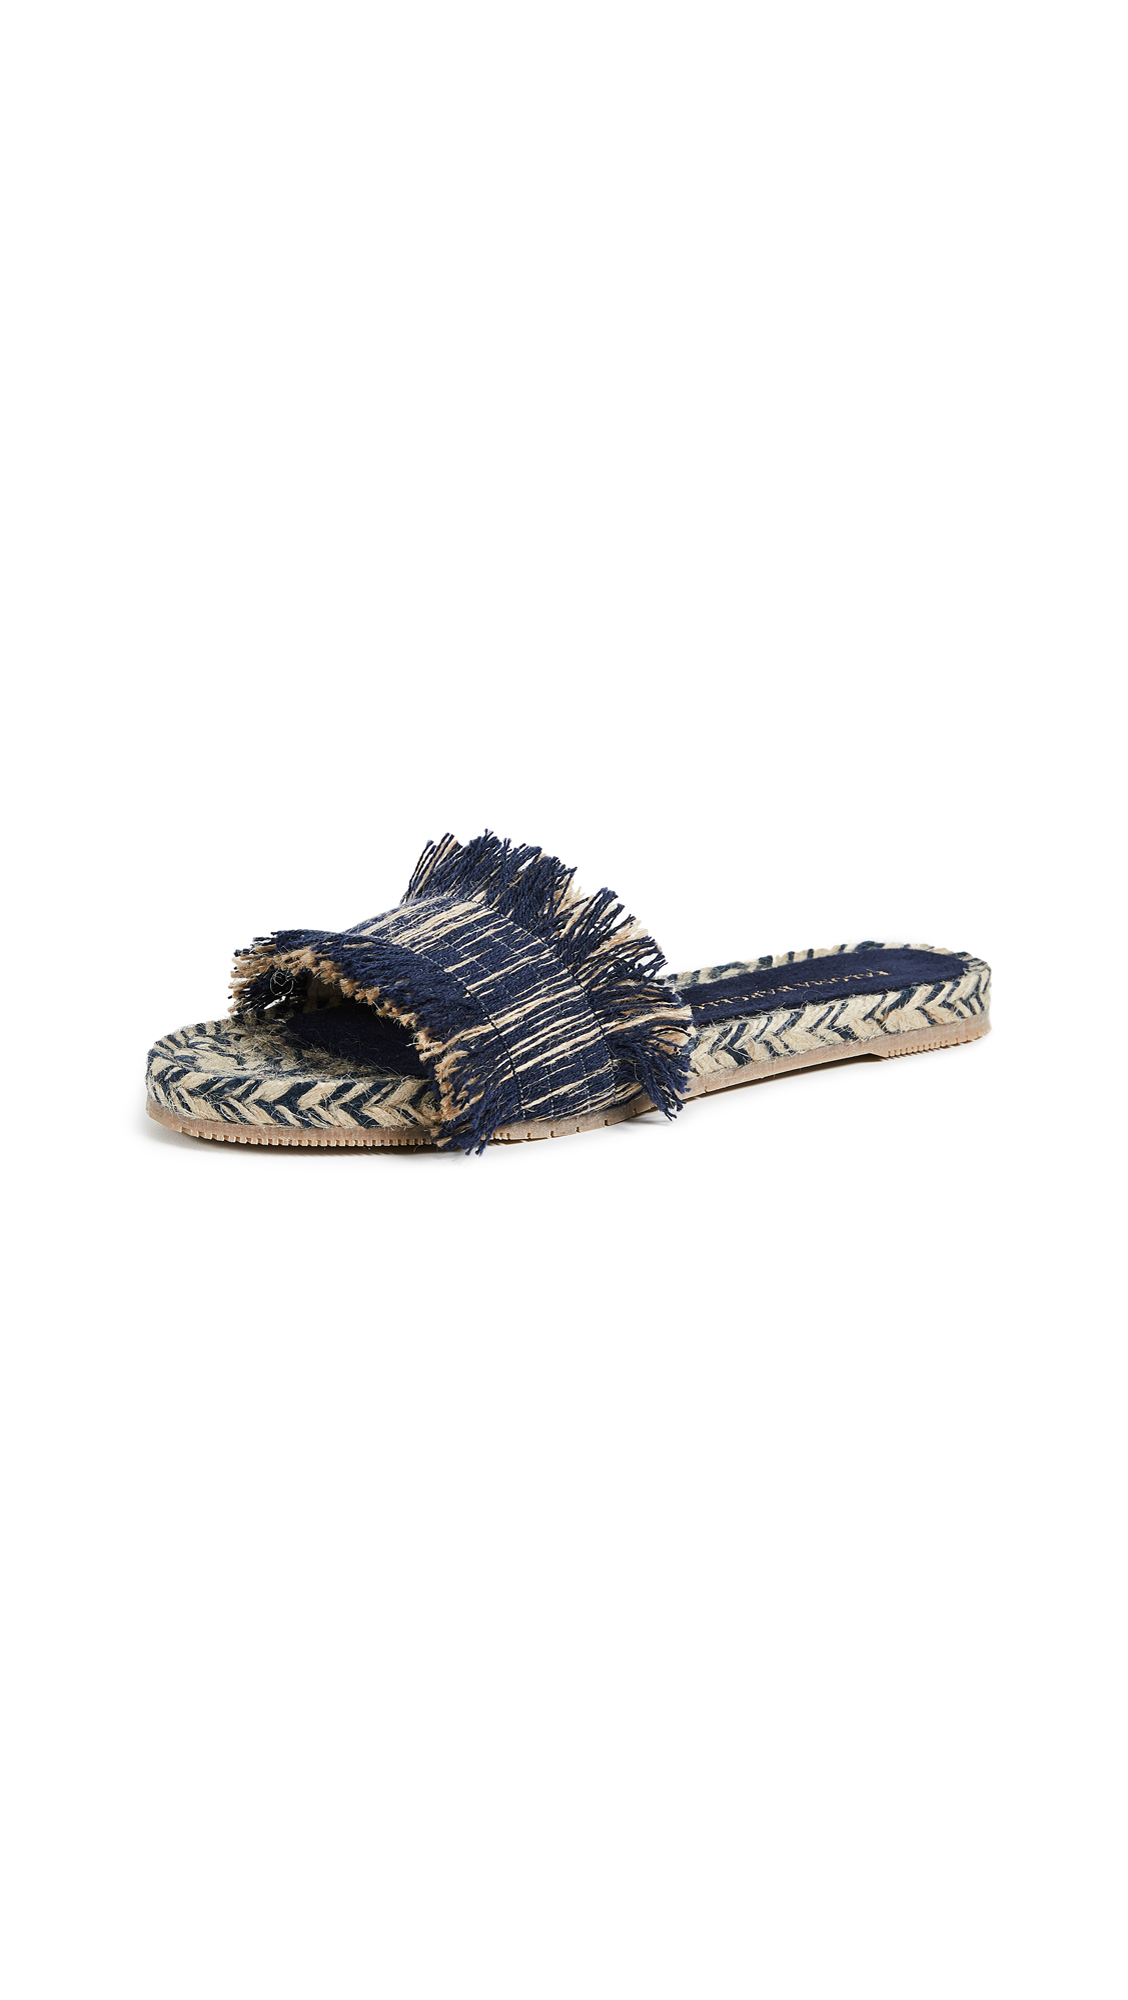 Paloma Barcelo Aqracejo Fringe Slides - Light Blue